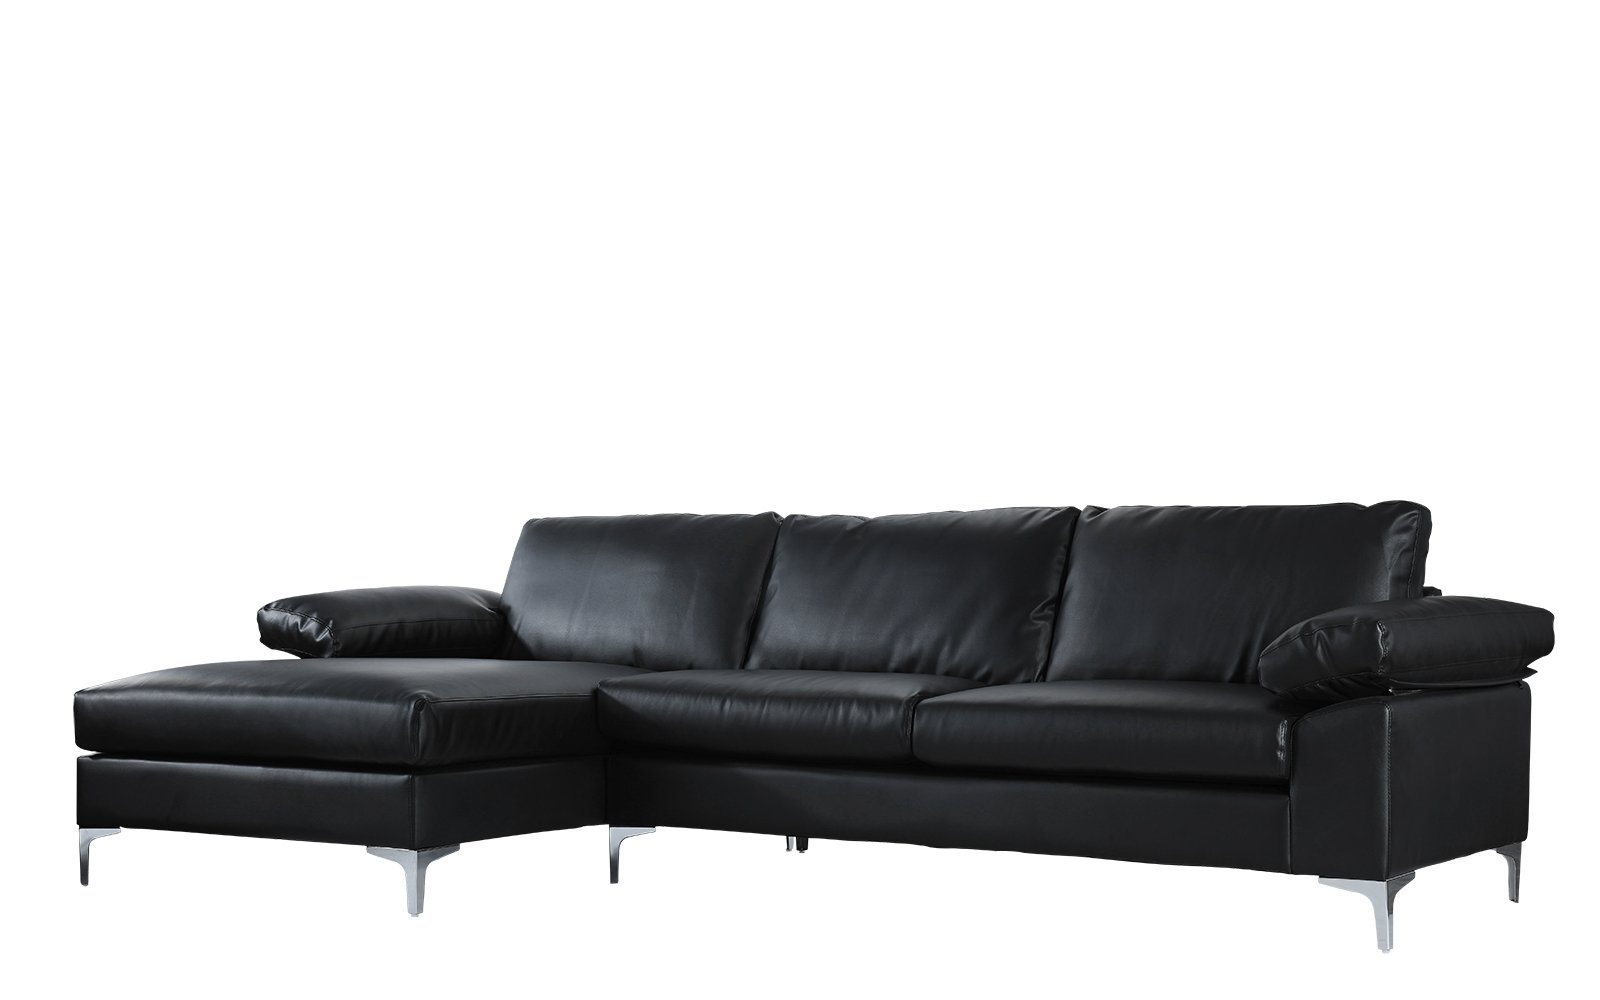 Casa Andrea Modern Large Faux Leather Sectional Sofa, L-Shape Couch with Extra Wide Chaise Lounge (Black) by Casa Andrea